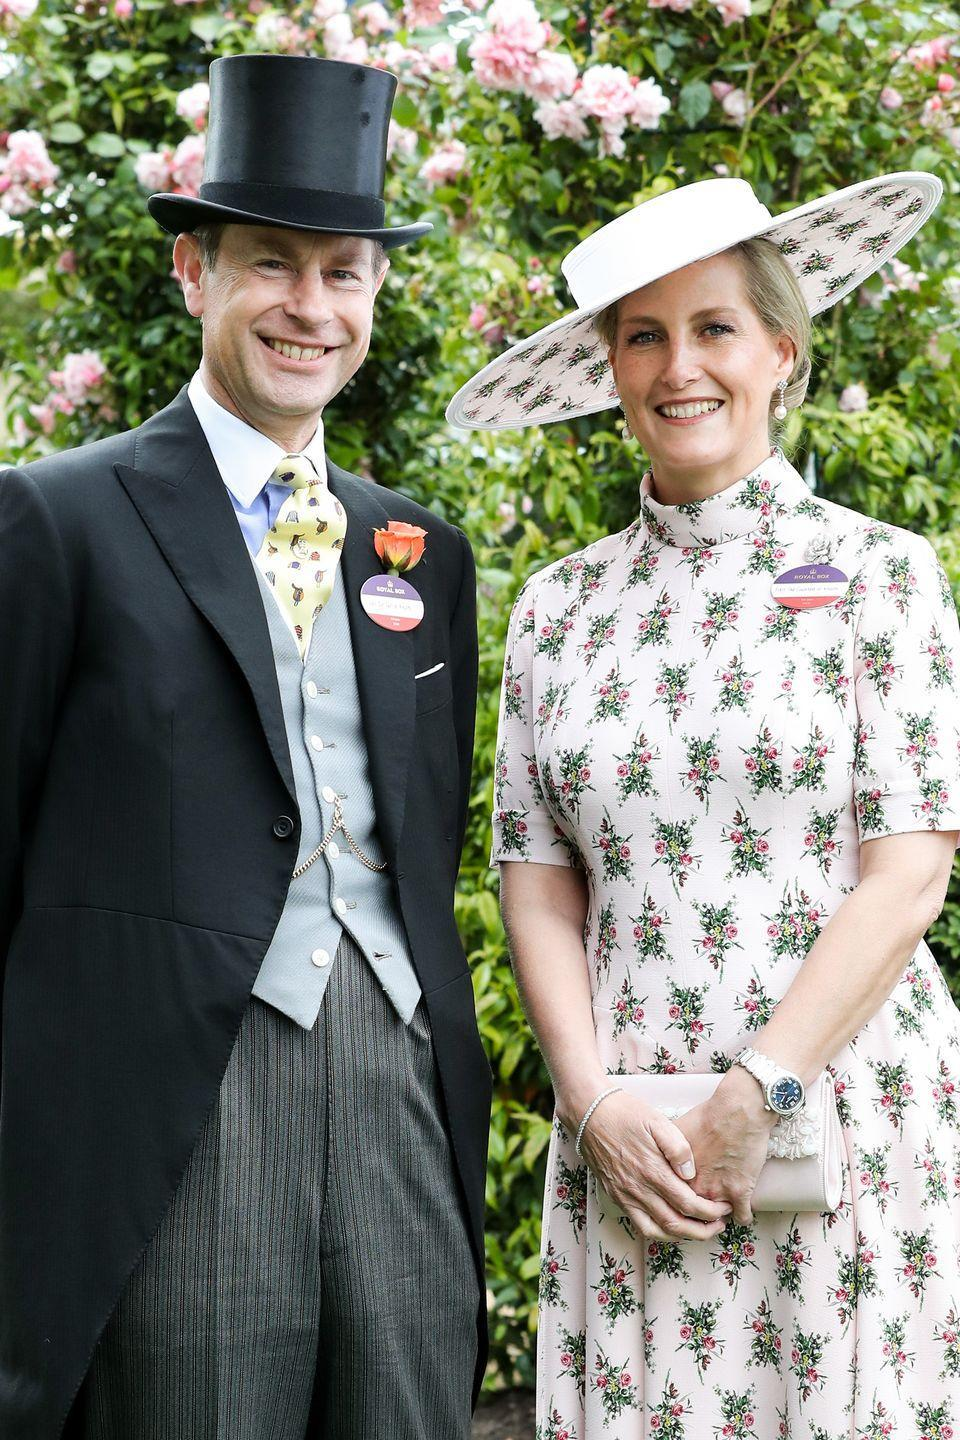 <p>On Opening Day of Royal Ascot, the Countess of Wessex posed for photos with Prince Edward in honor of their upcoming 20th wedding anniversary. For the day at the races, Sophie chose a pale pink dress with a bold floral pattern, and paired it with a matching wide-brimmed hat. </p>